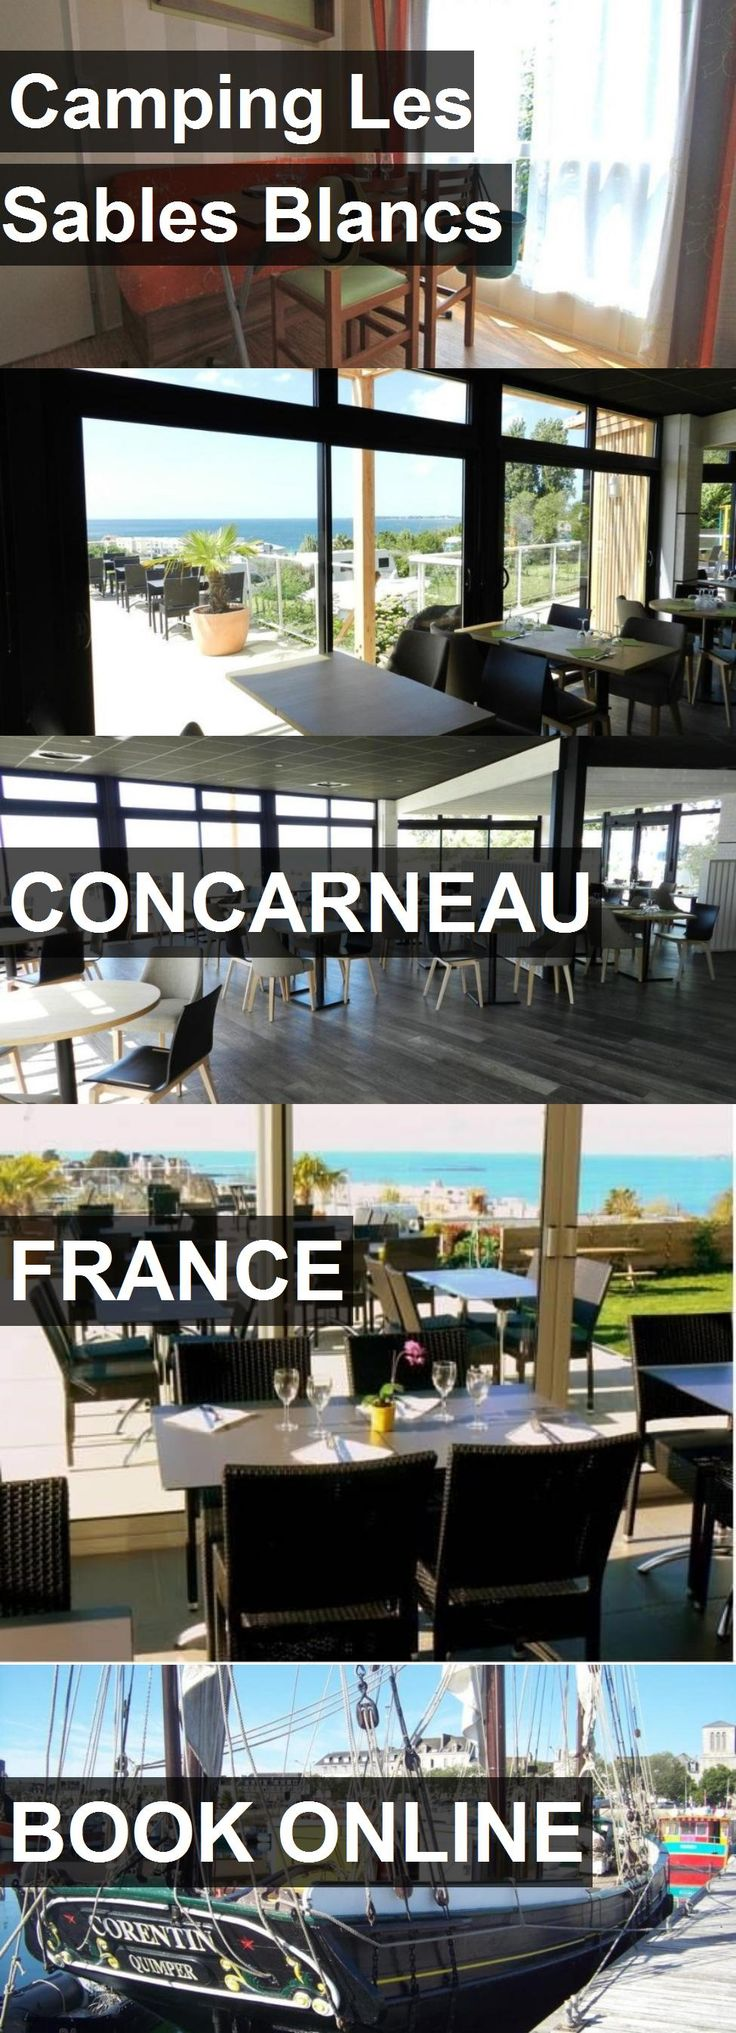 Hotel Camping Les Sables Blancs in Concarneau, France. For more information, photos, reviews and best prices please follow the link. #France #Concarneau #travel #vacation #hotel